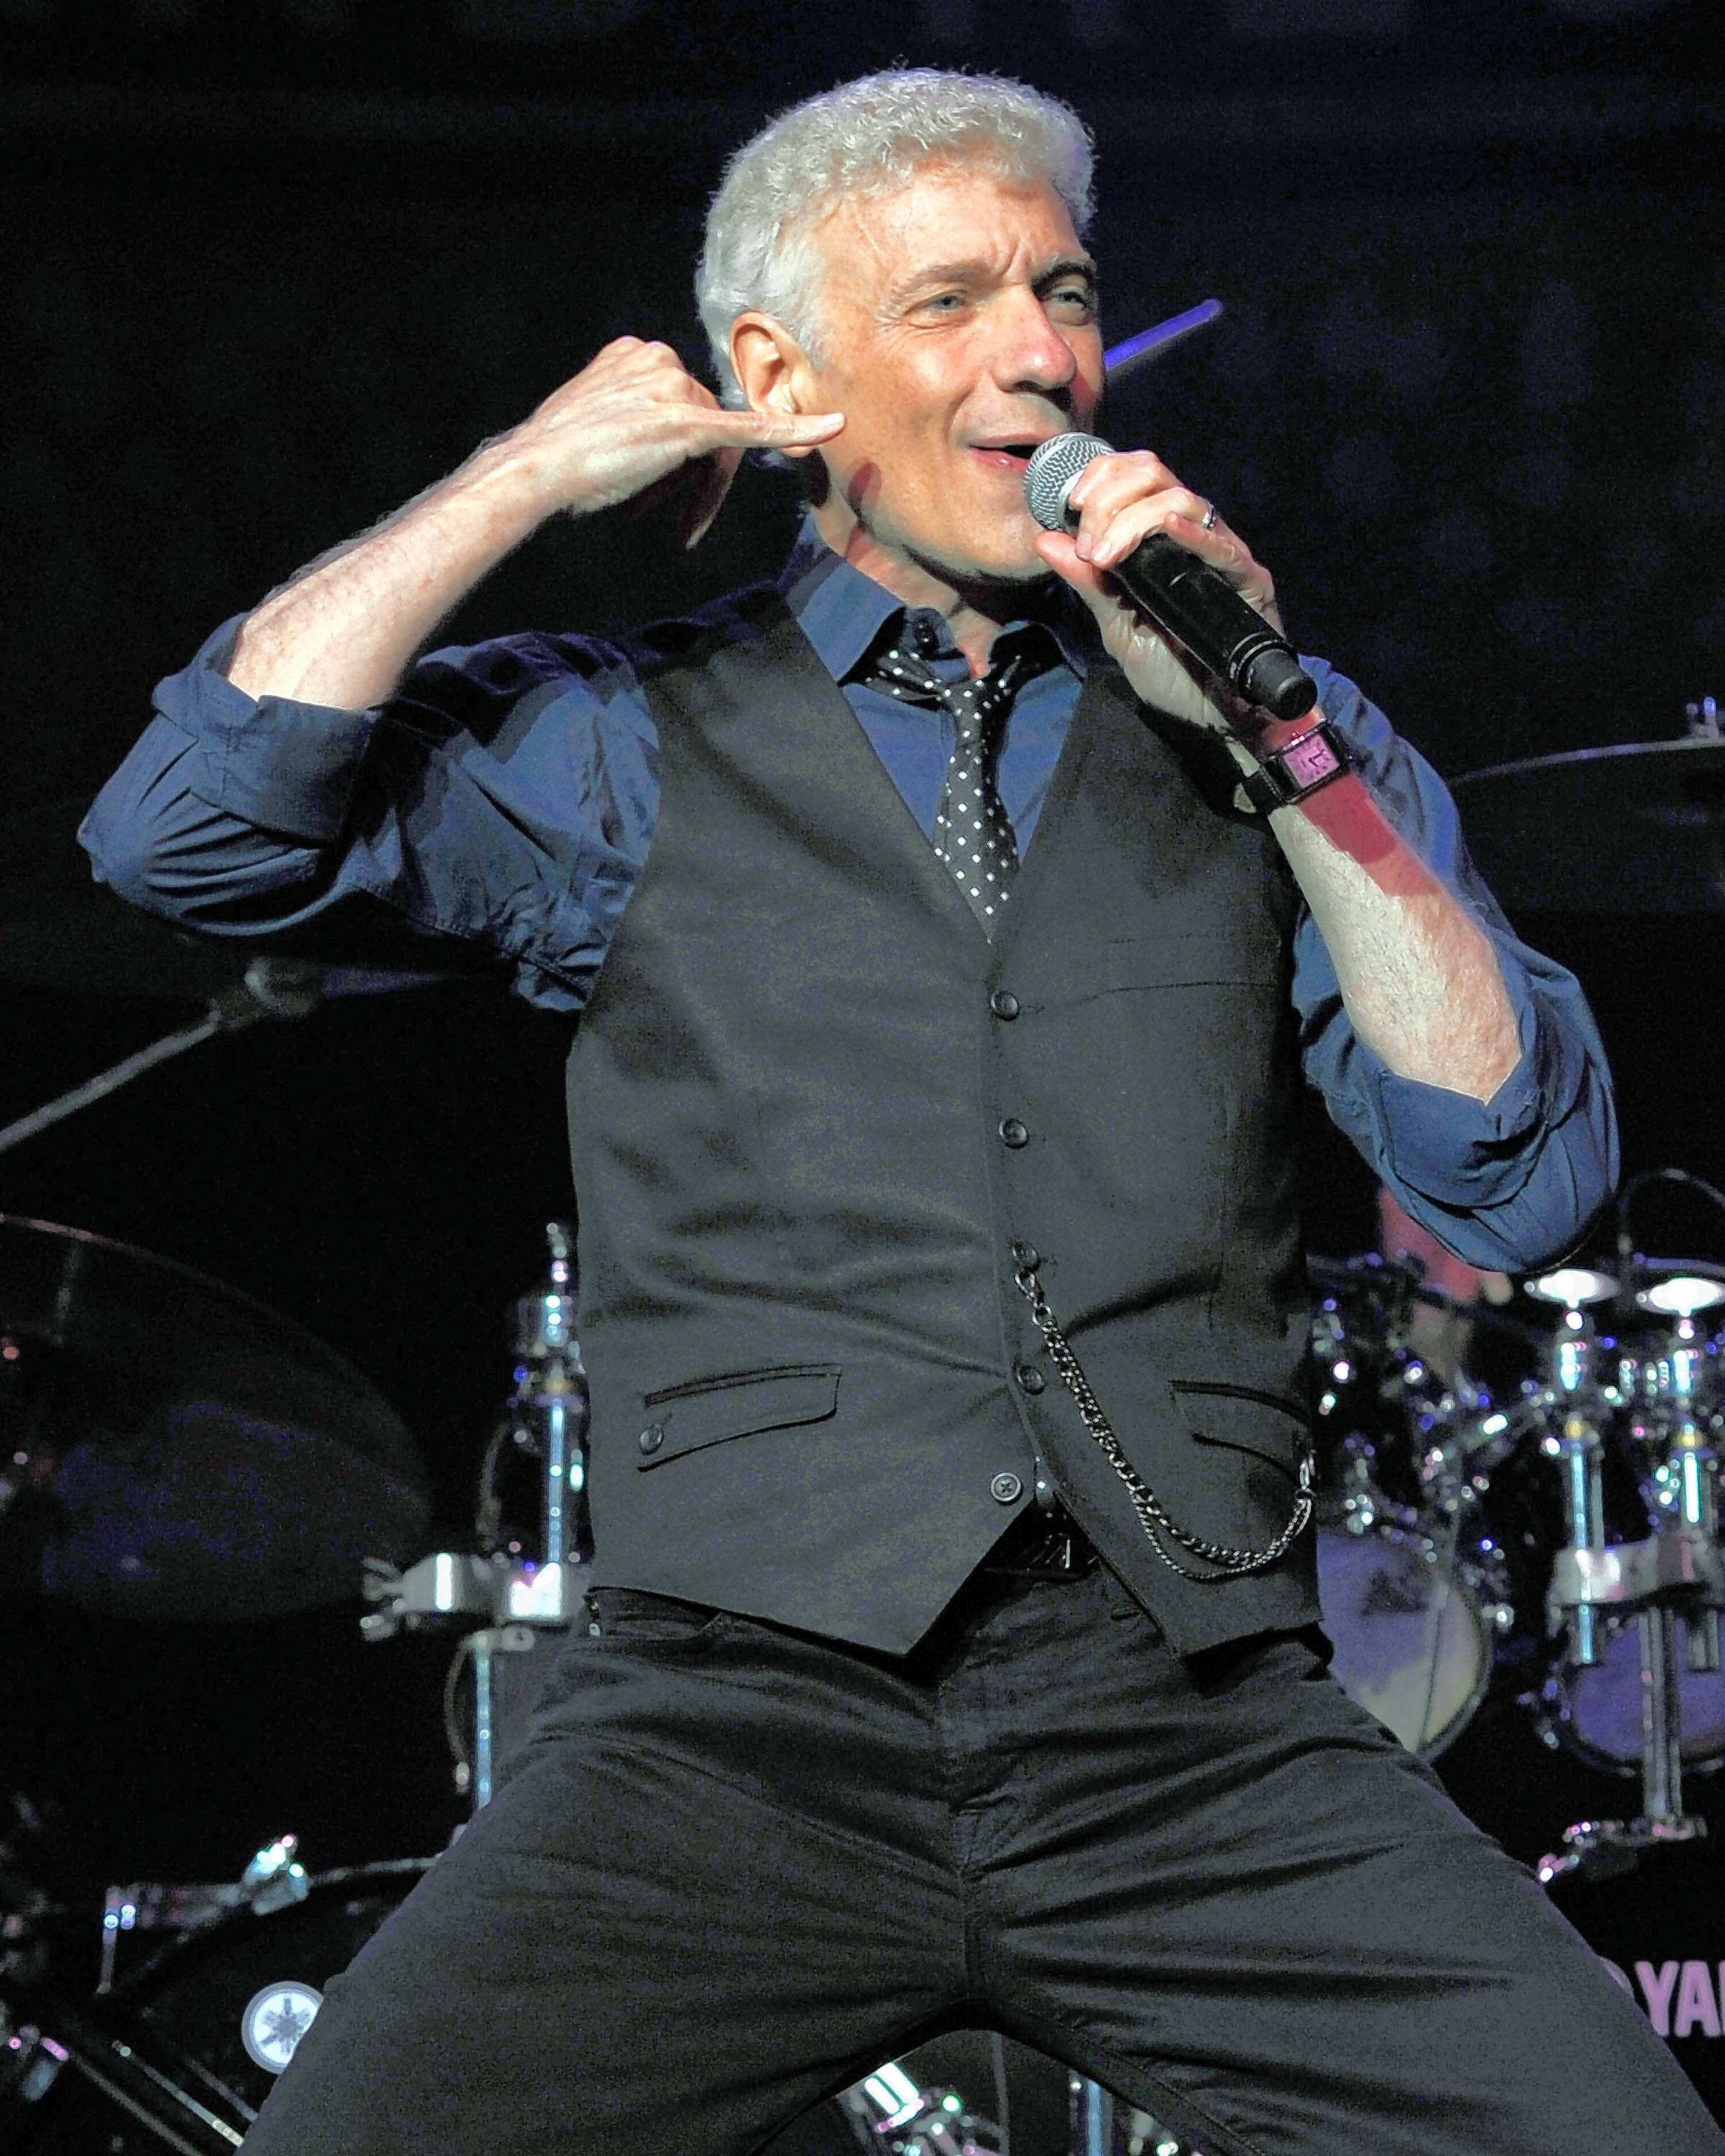 Dennis DeYoung, a founding member of the rock band Styx, performs at the Genesee Theatre in Waukegan on Saturday, Feb. 10.